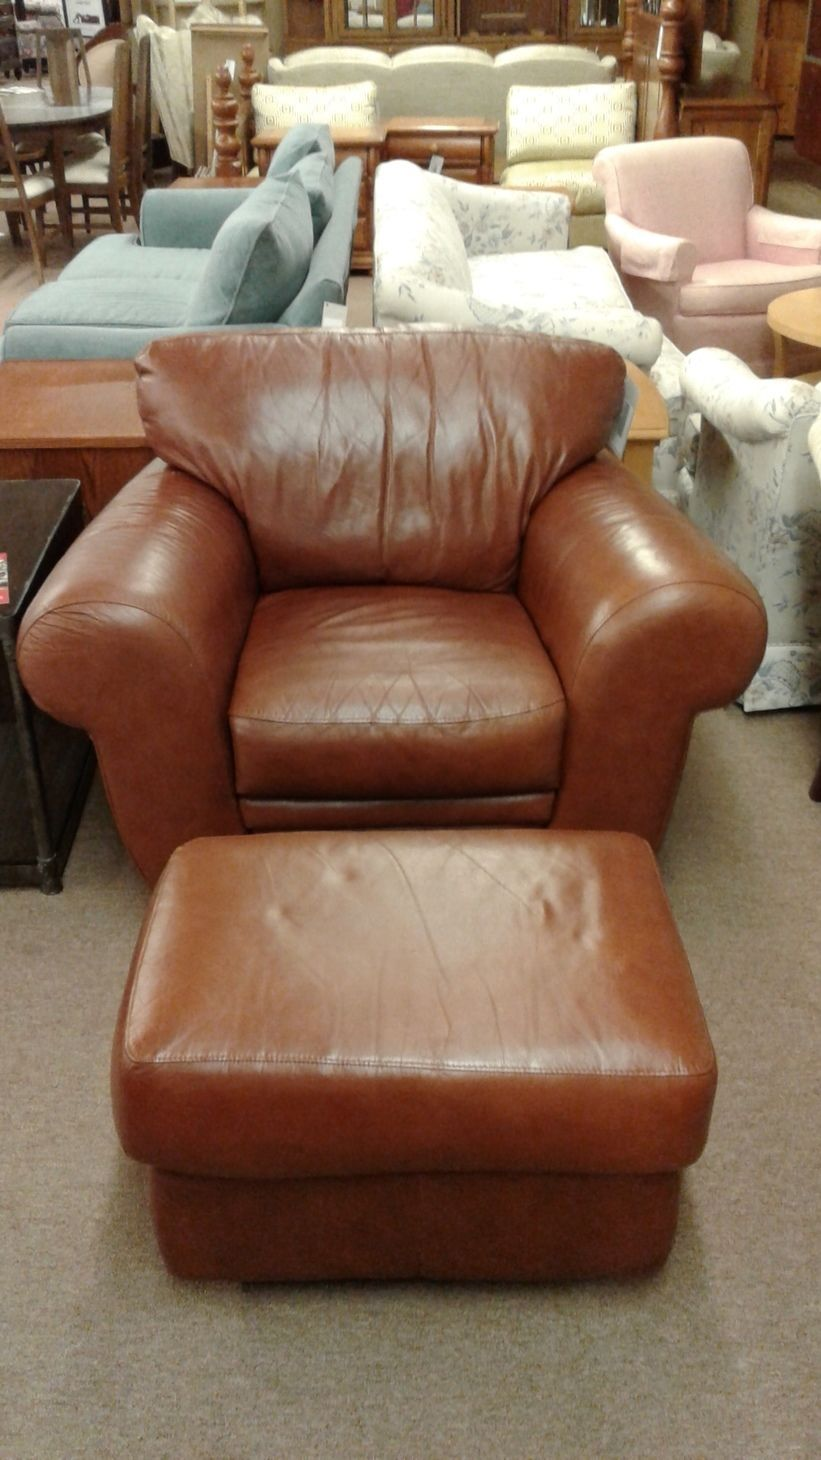 Chateau Dax Furniture Reviews: Delmarva Furniture Consignment